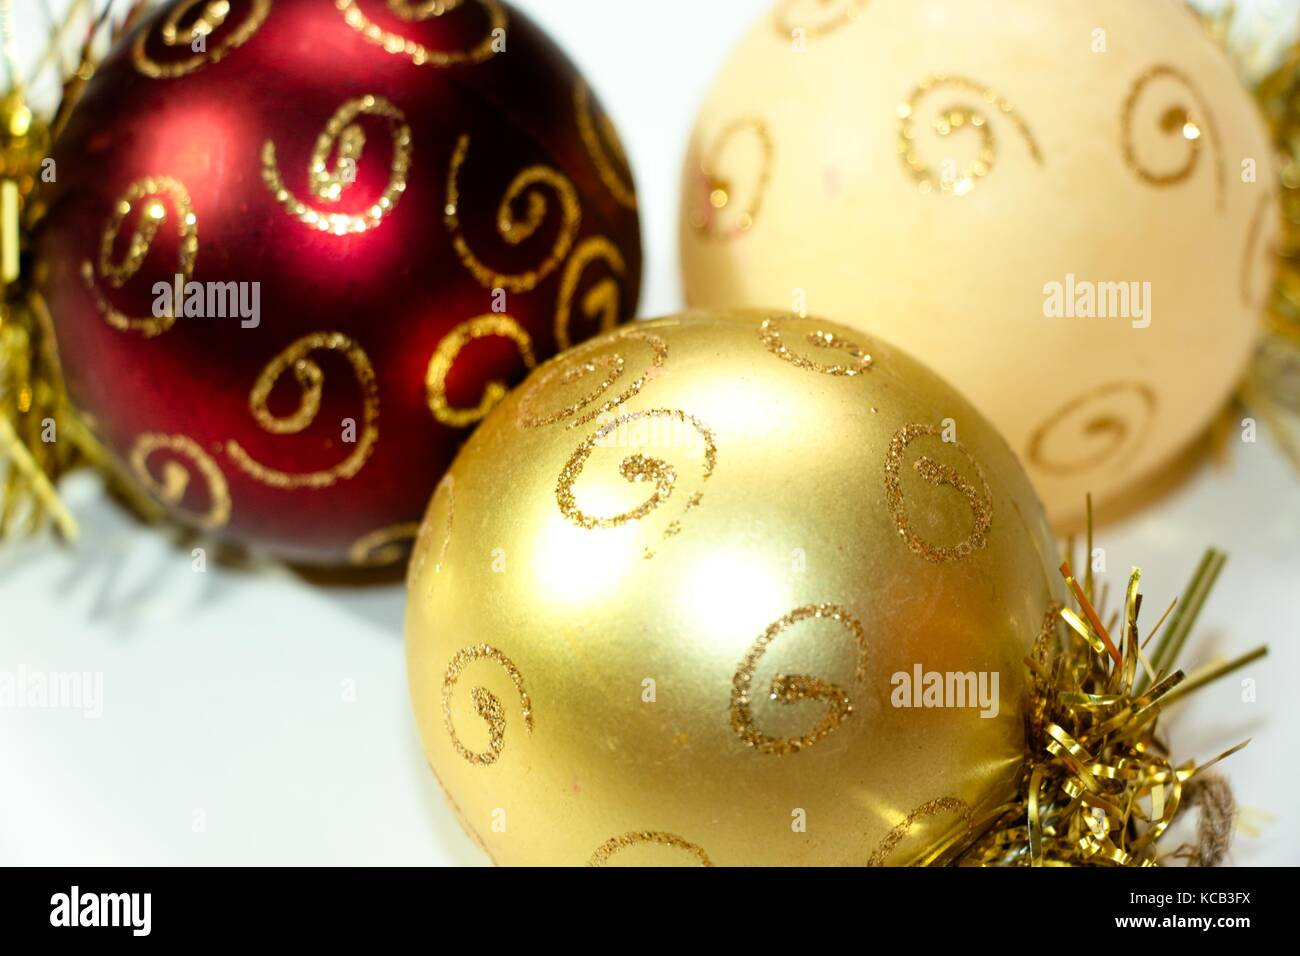 Three multi-colored Christmas decorations in the shape of a balloon, painted with gold patterns. A composition of - Stock Image